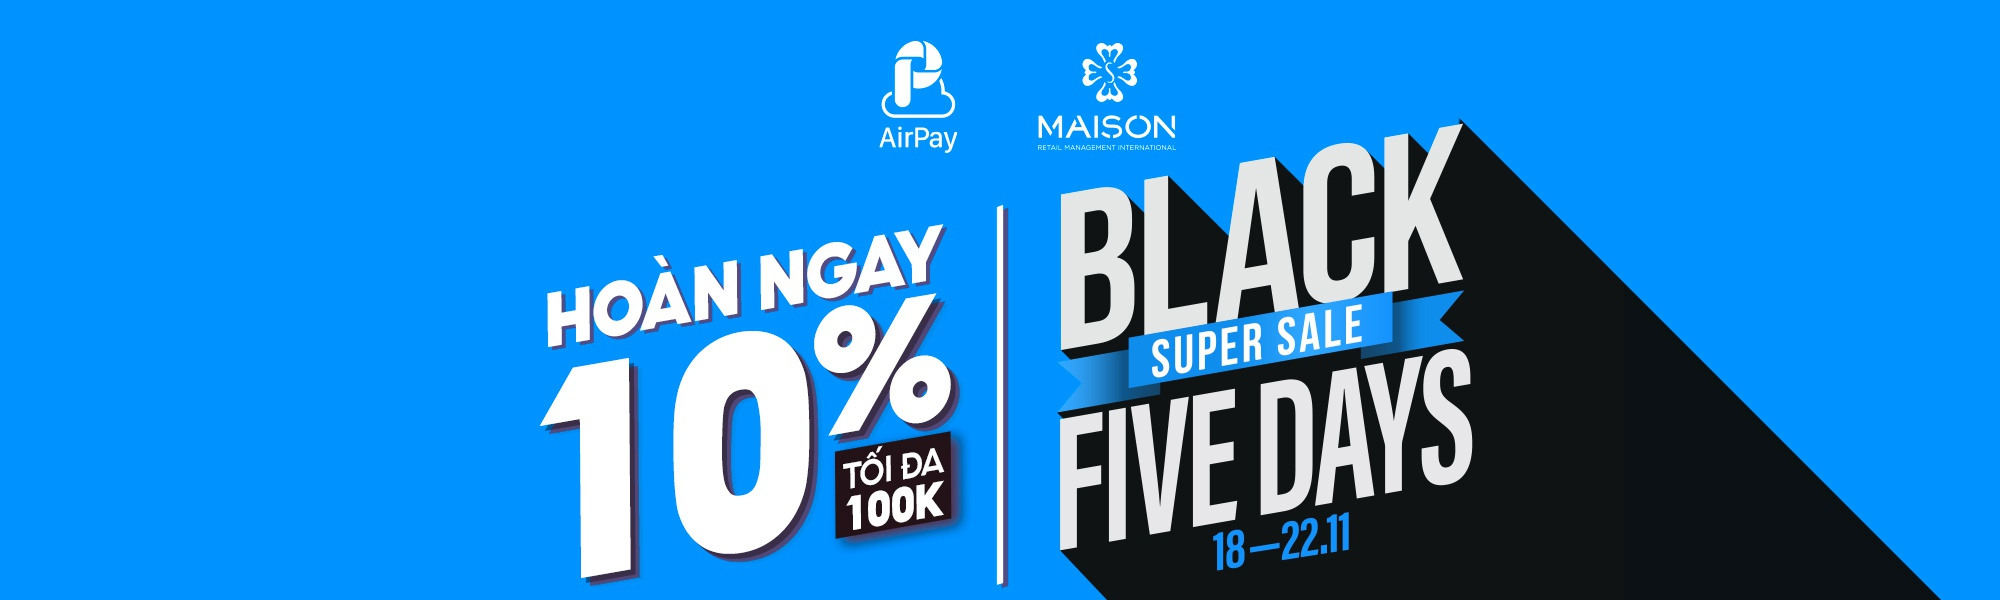 promotion-airpay-maison